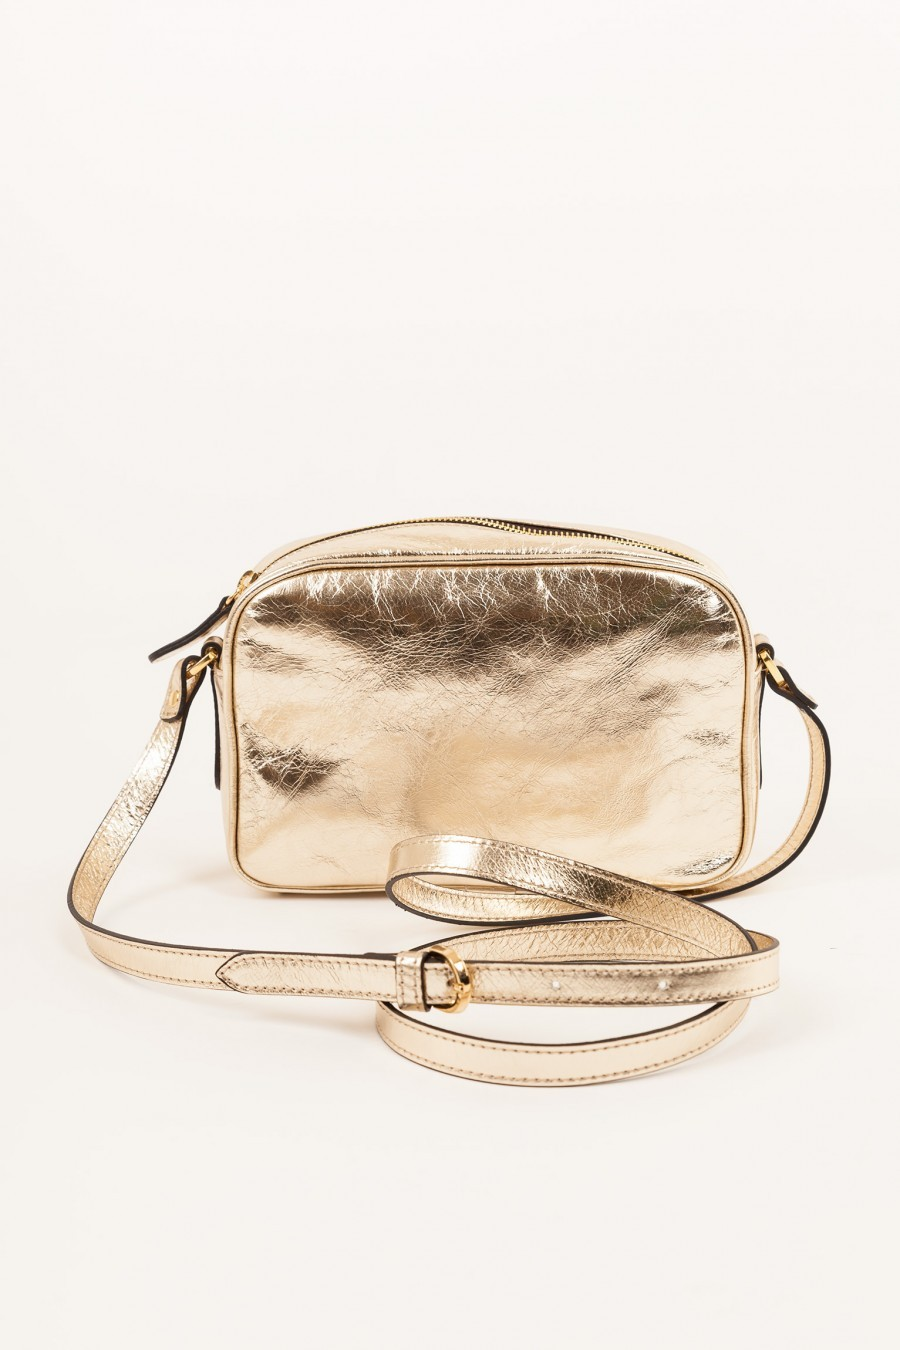 Shoulder bag Lazzari gold